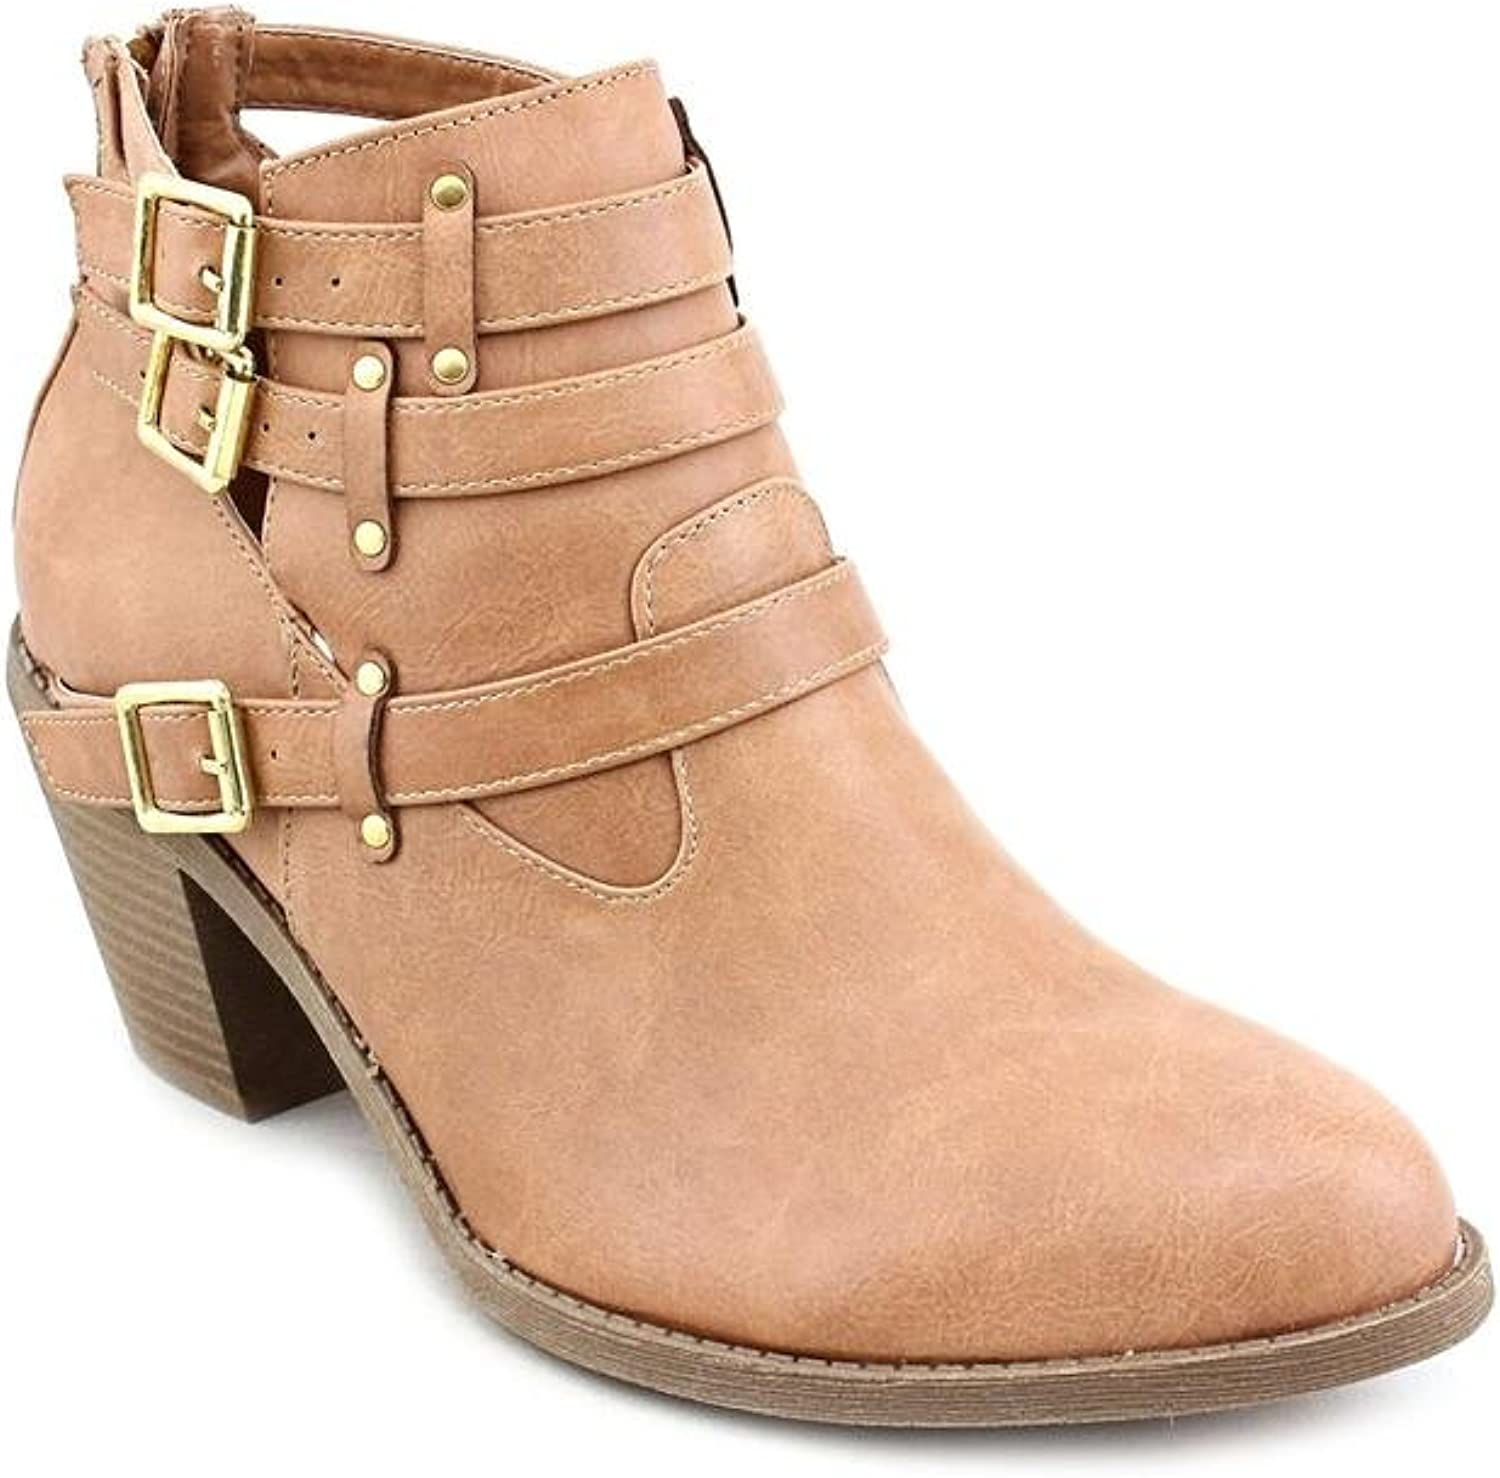 Madden Girl Gossip Womens 6 Brown Faux Leather Fashion Ankle Boots New Display